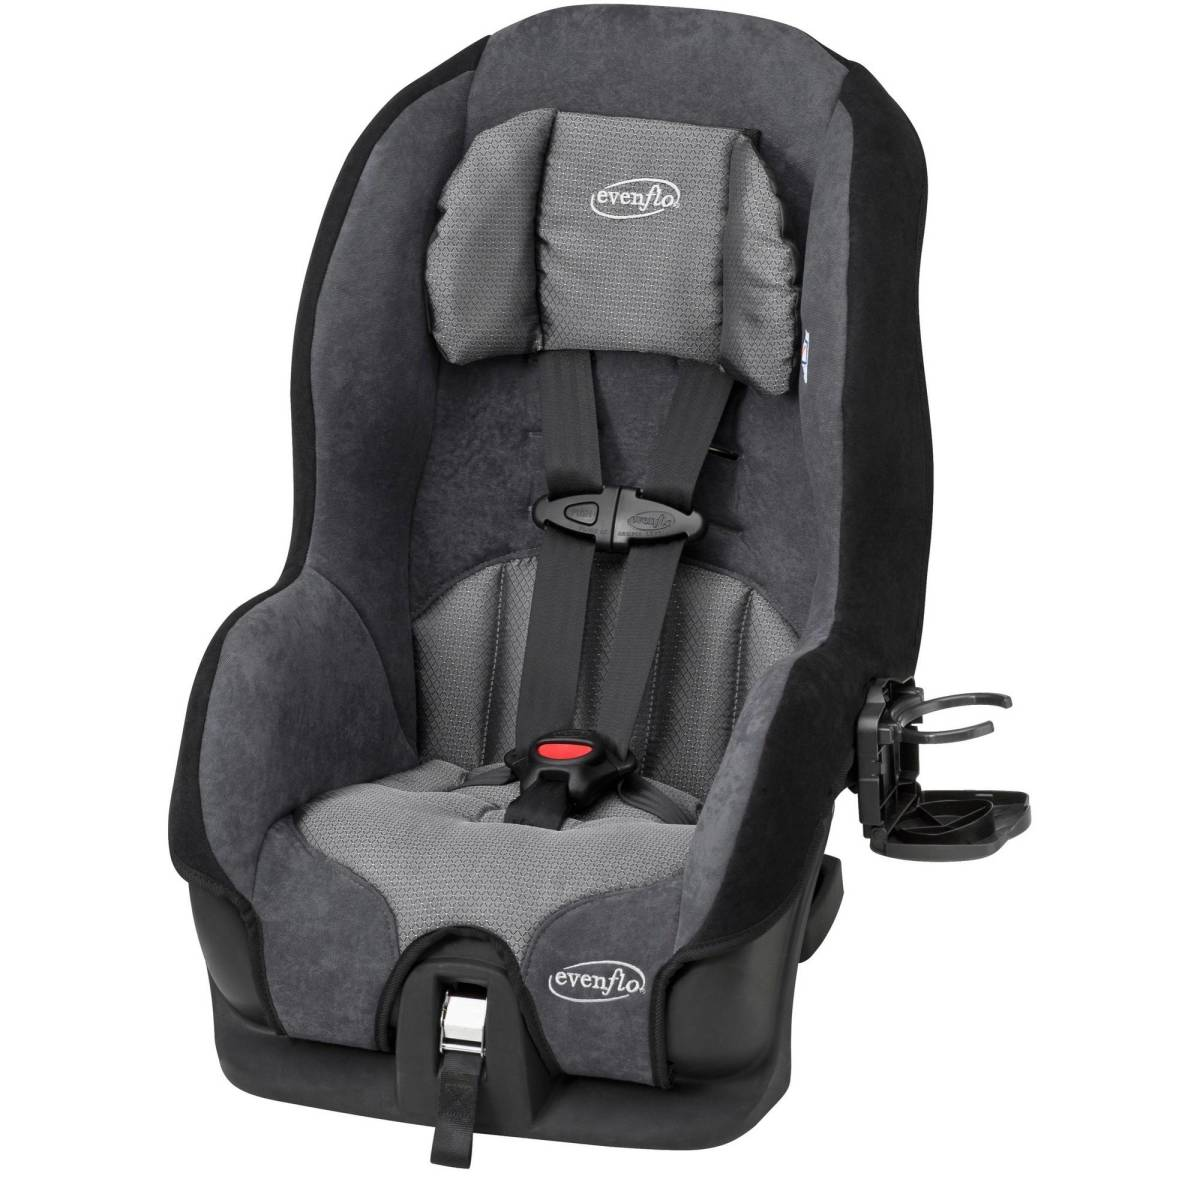 NEW Convertible 3 in 1 Car Seat Baby Child Toddler Infant SportsCar ...